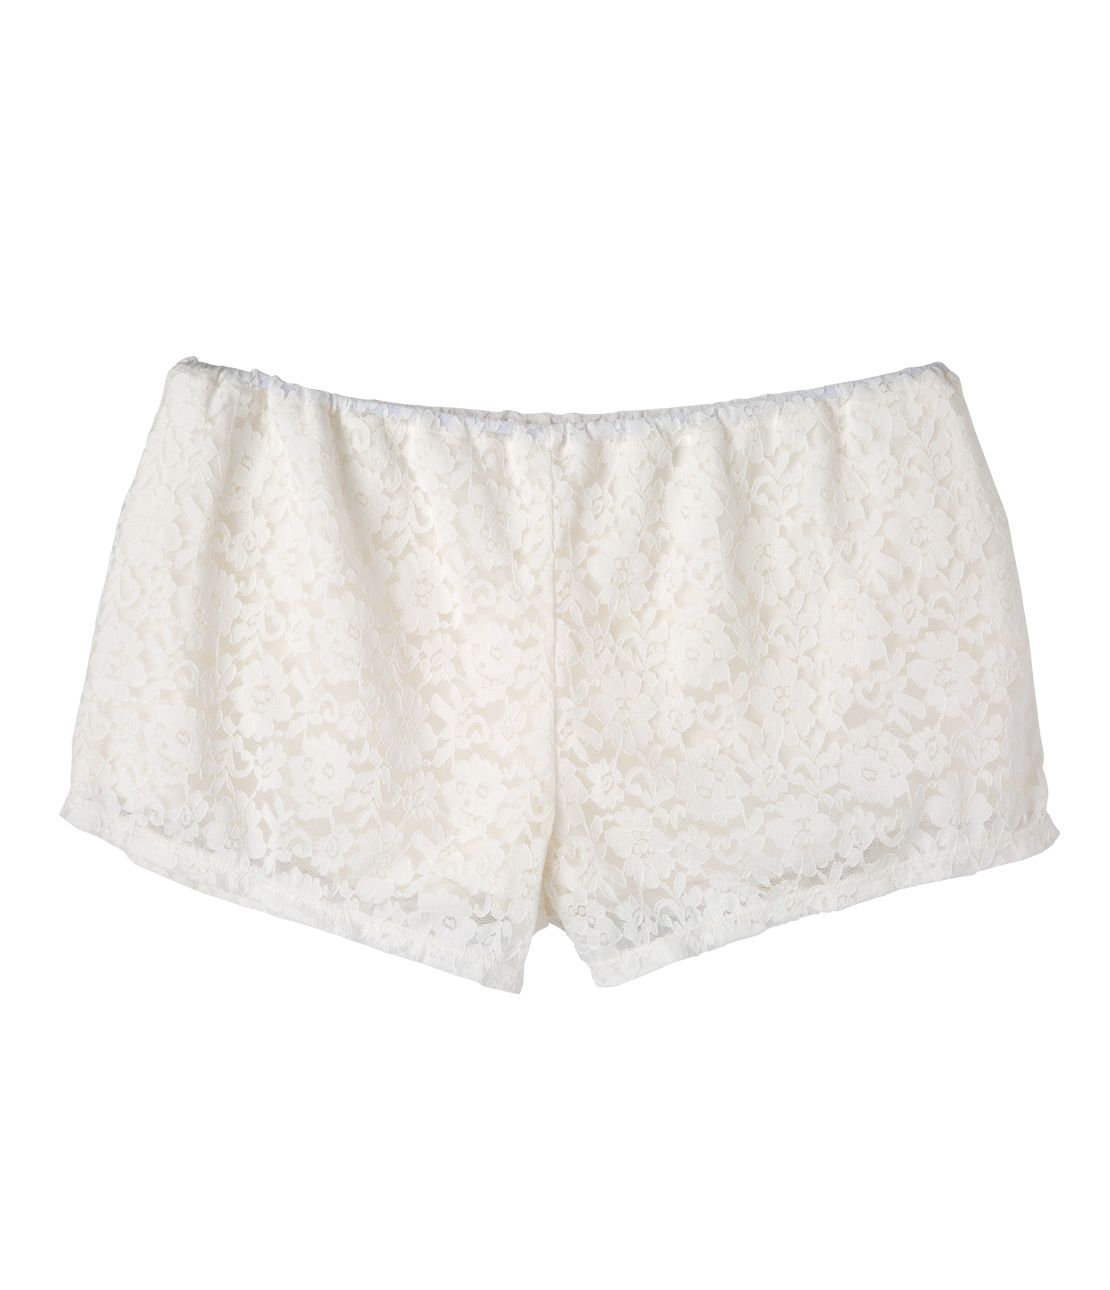 Ms. Pikki Lady lace high-waisted pants